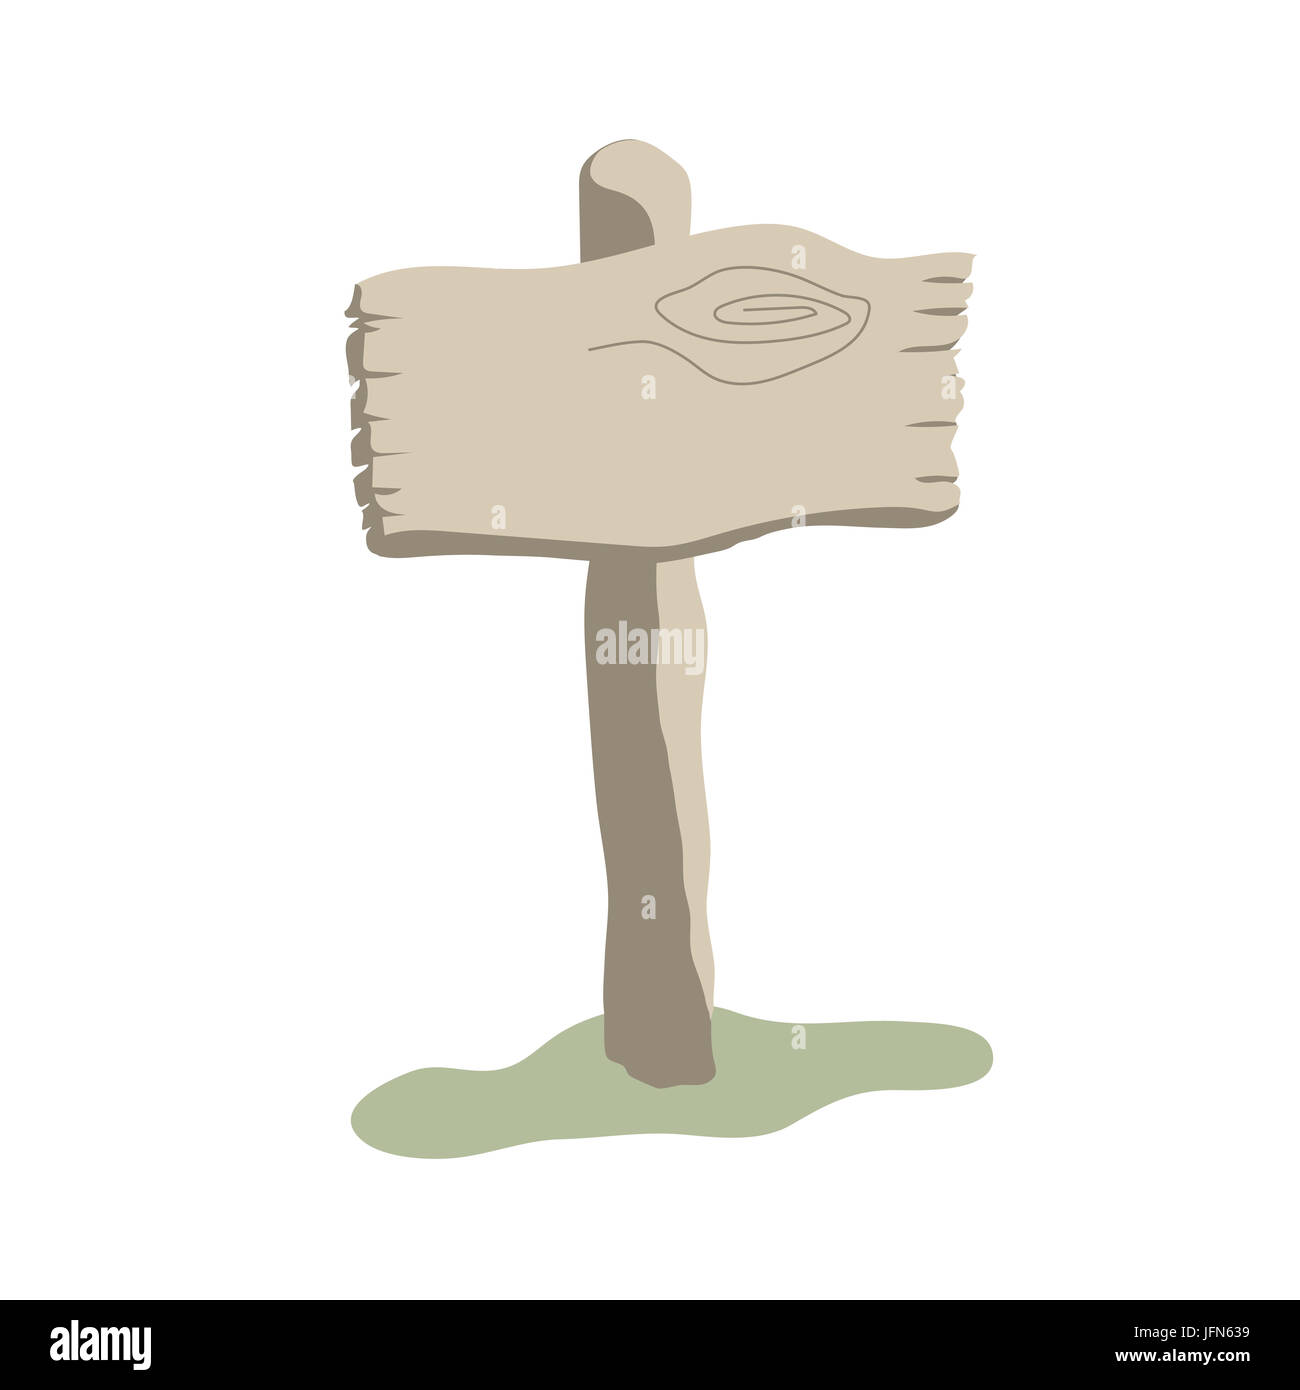 Square shape weathered wooden sign boards cartoon style - Stock Image